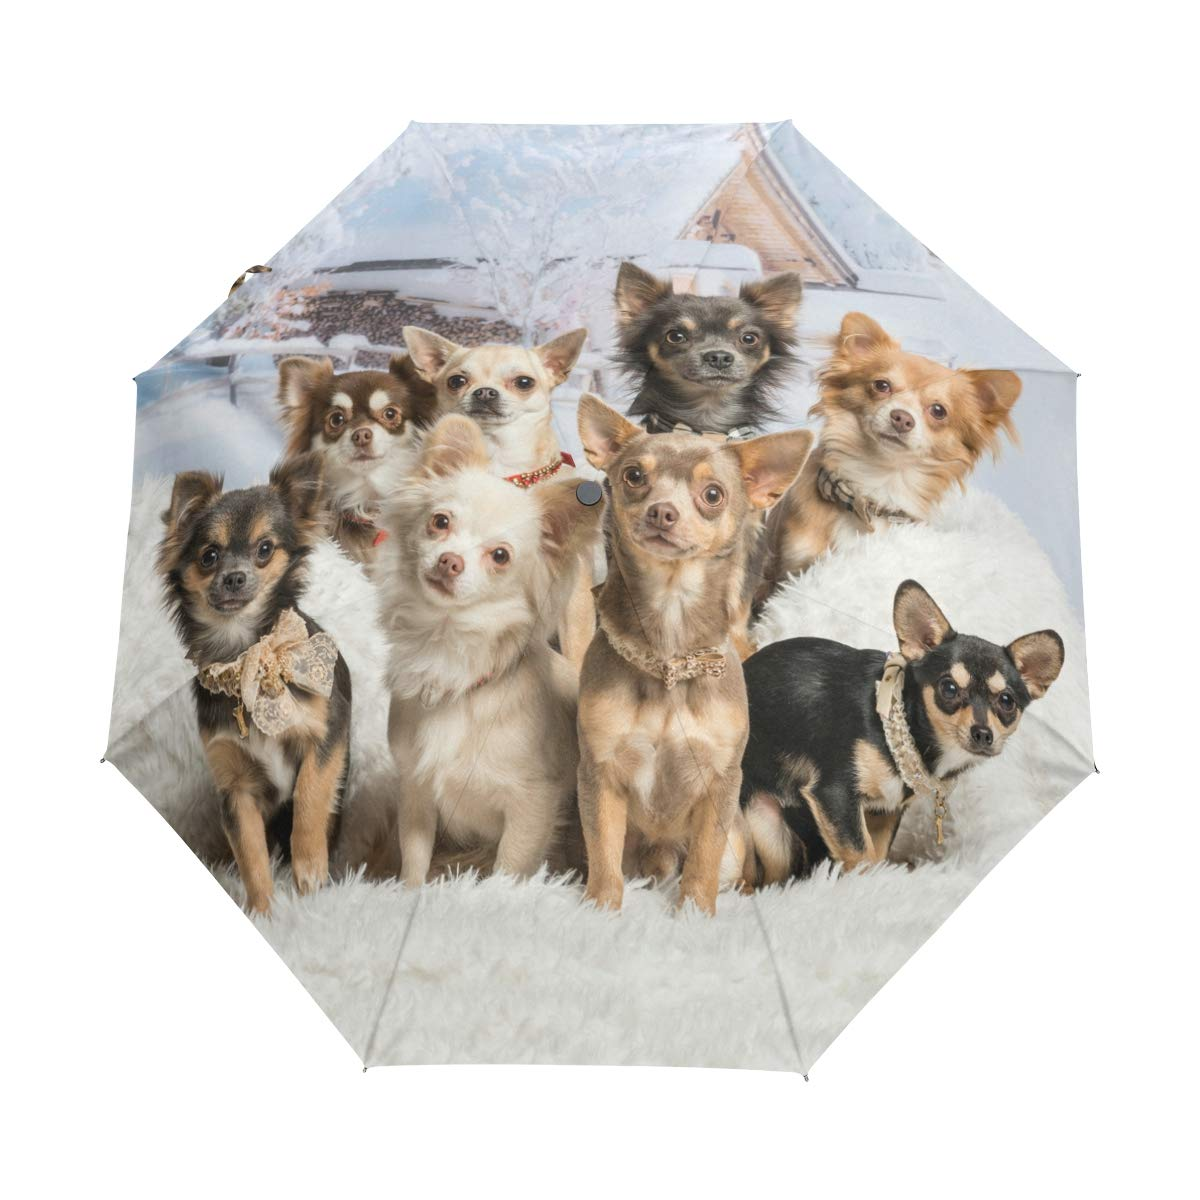 My Daily Cute Chihuahuas Dog Travel Umbrella Auto Open/Close Lightweight Compact Windproof